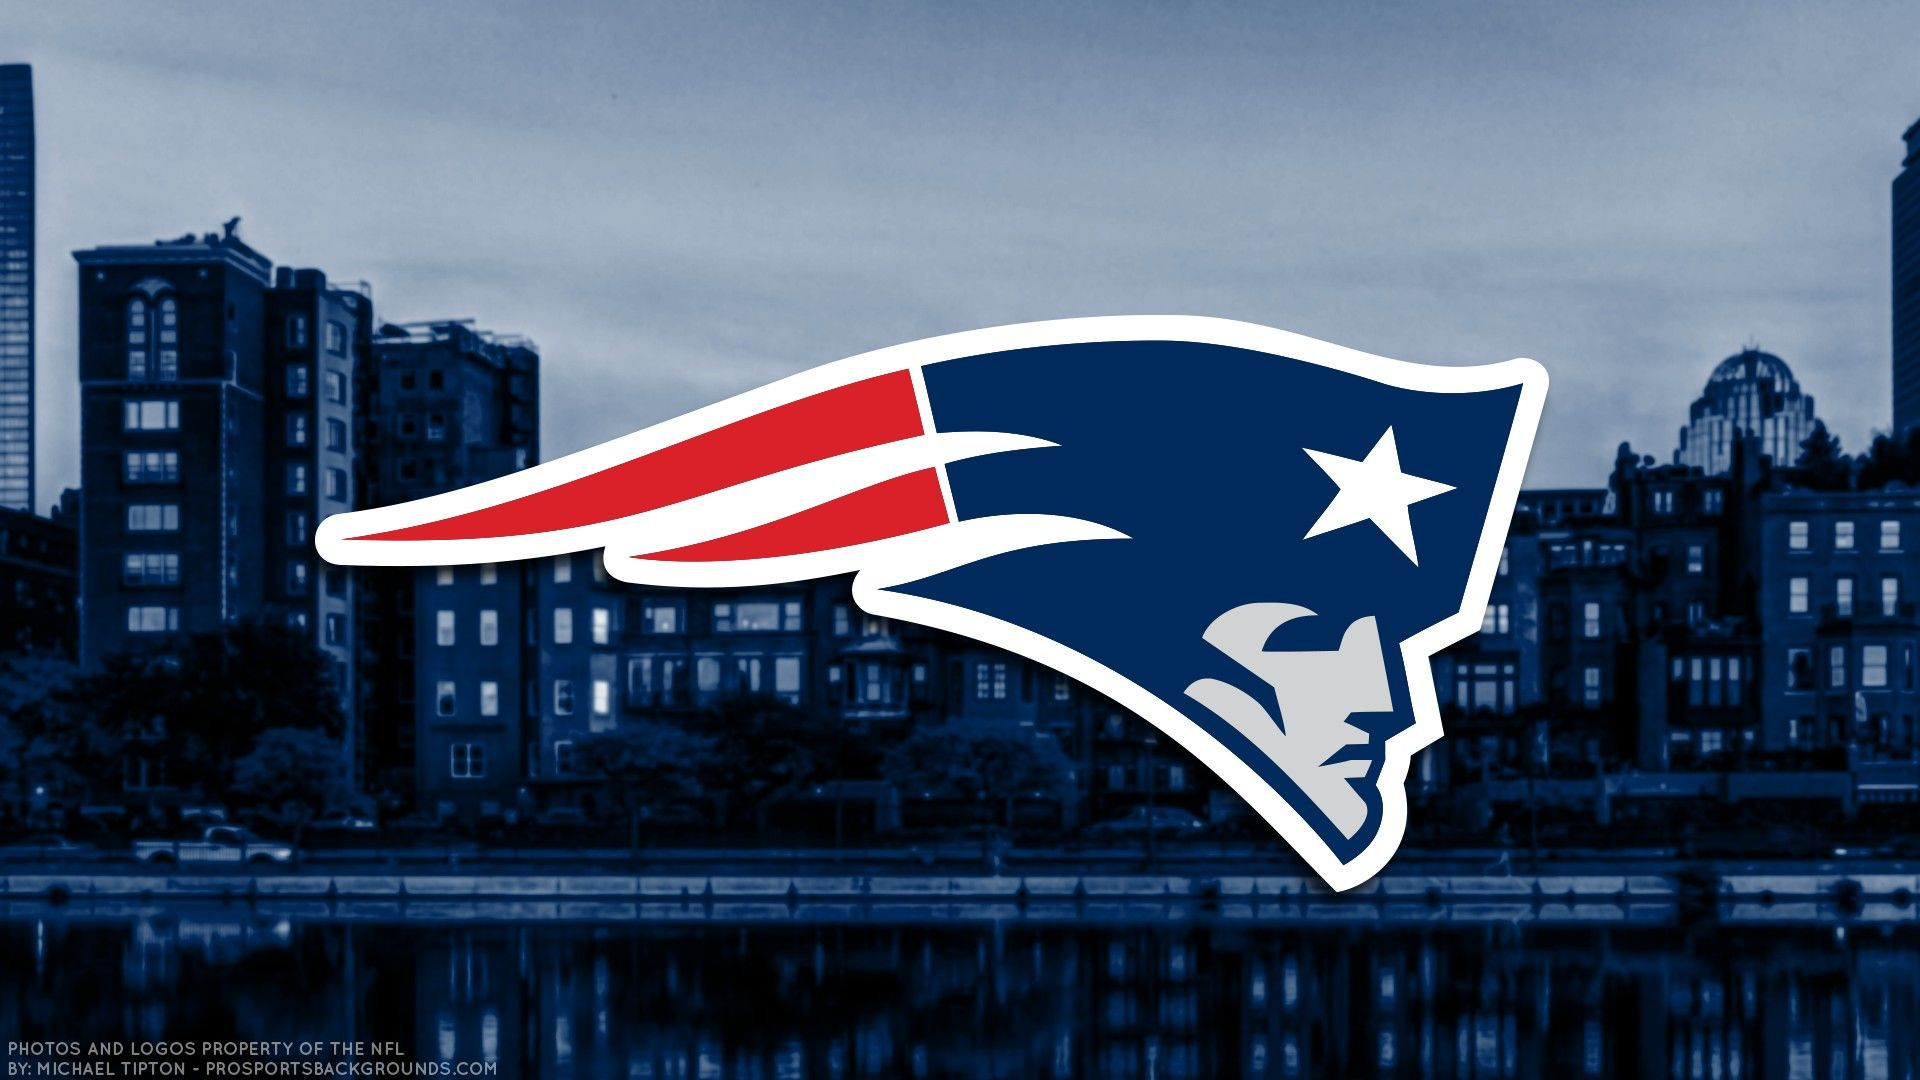 Nfl Wallpapers New England Patriots Wallpaper New England Patriots Memes New England Patriots Logo